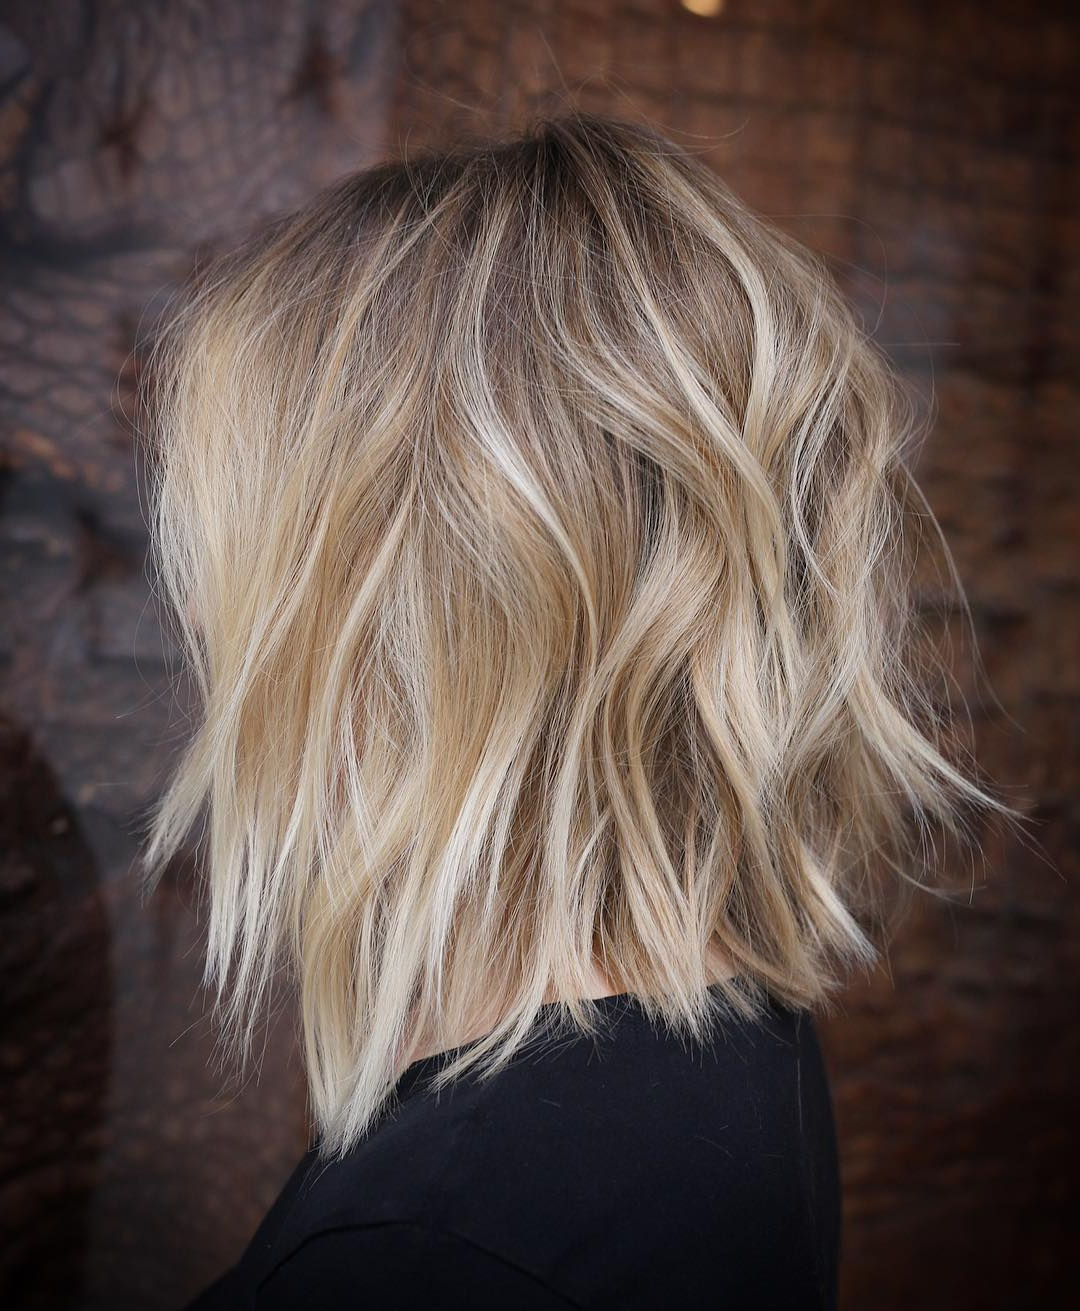 Most Popular Shaggy Ombre Lob Hairstyles Regarding 10 Stylish Lob Hairstyle Ideas, Best Shoulder Length Hair (View 10 of 20)